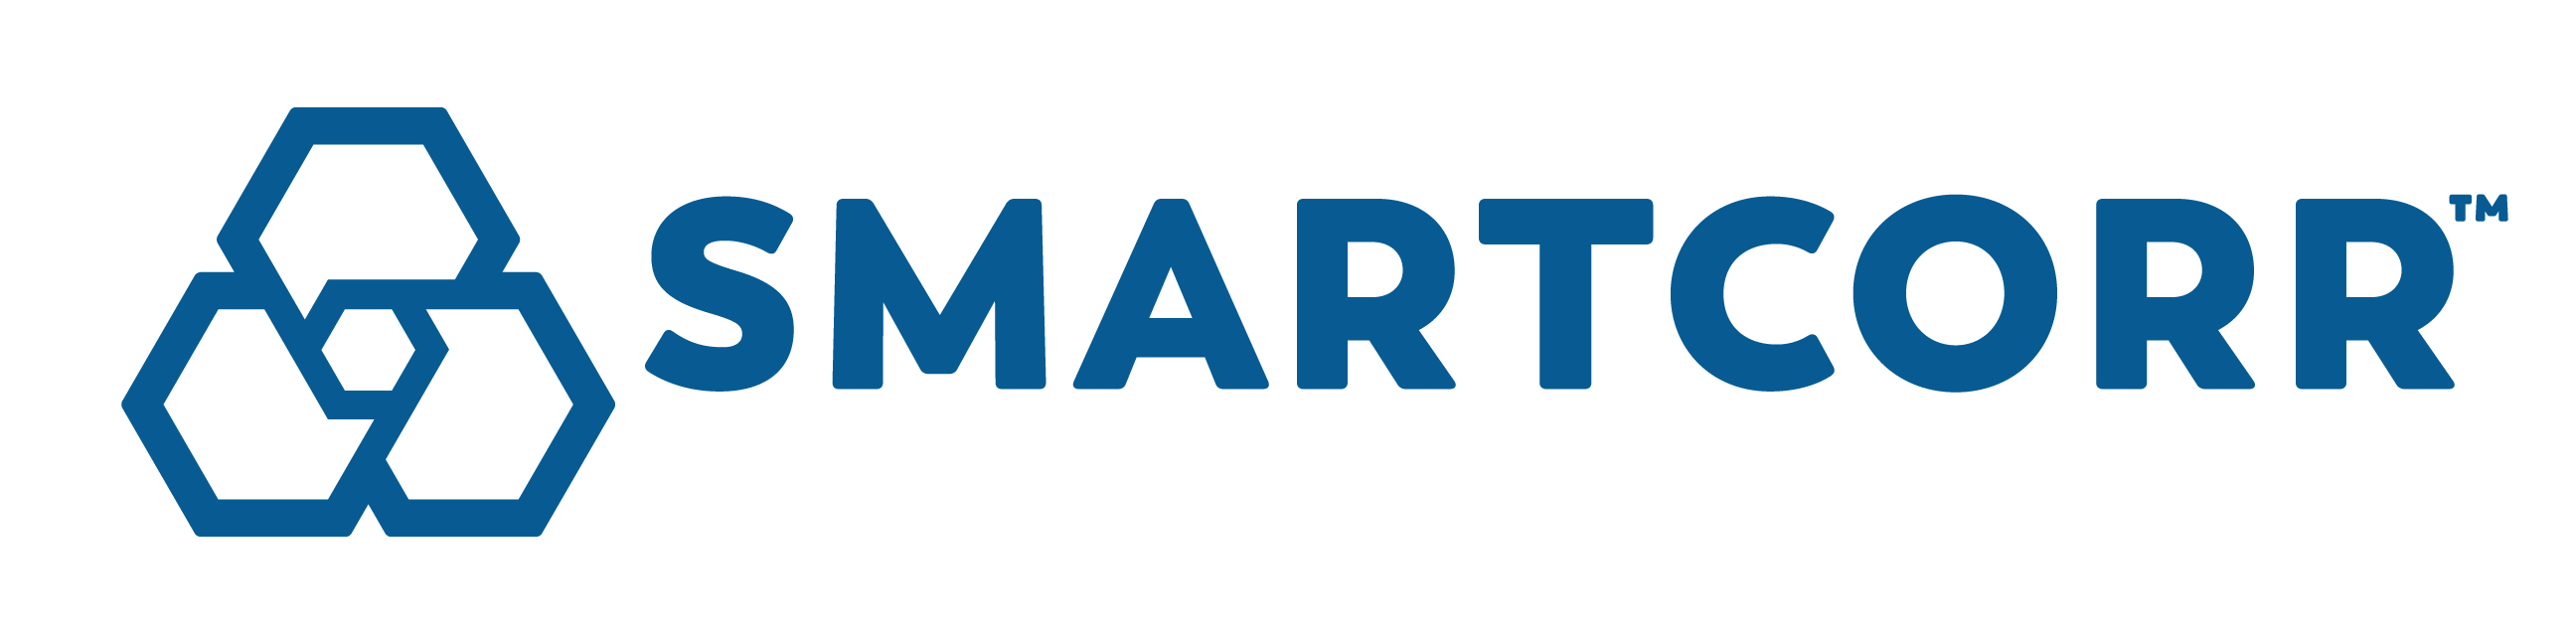 Smartcorr Systems Inc.